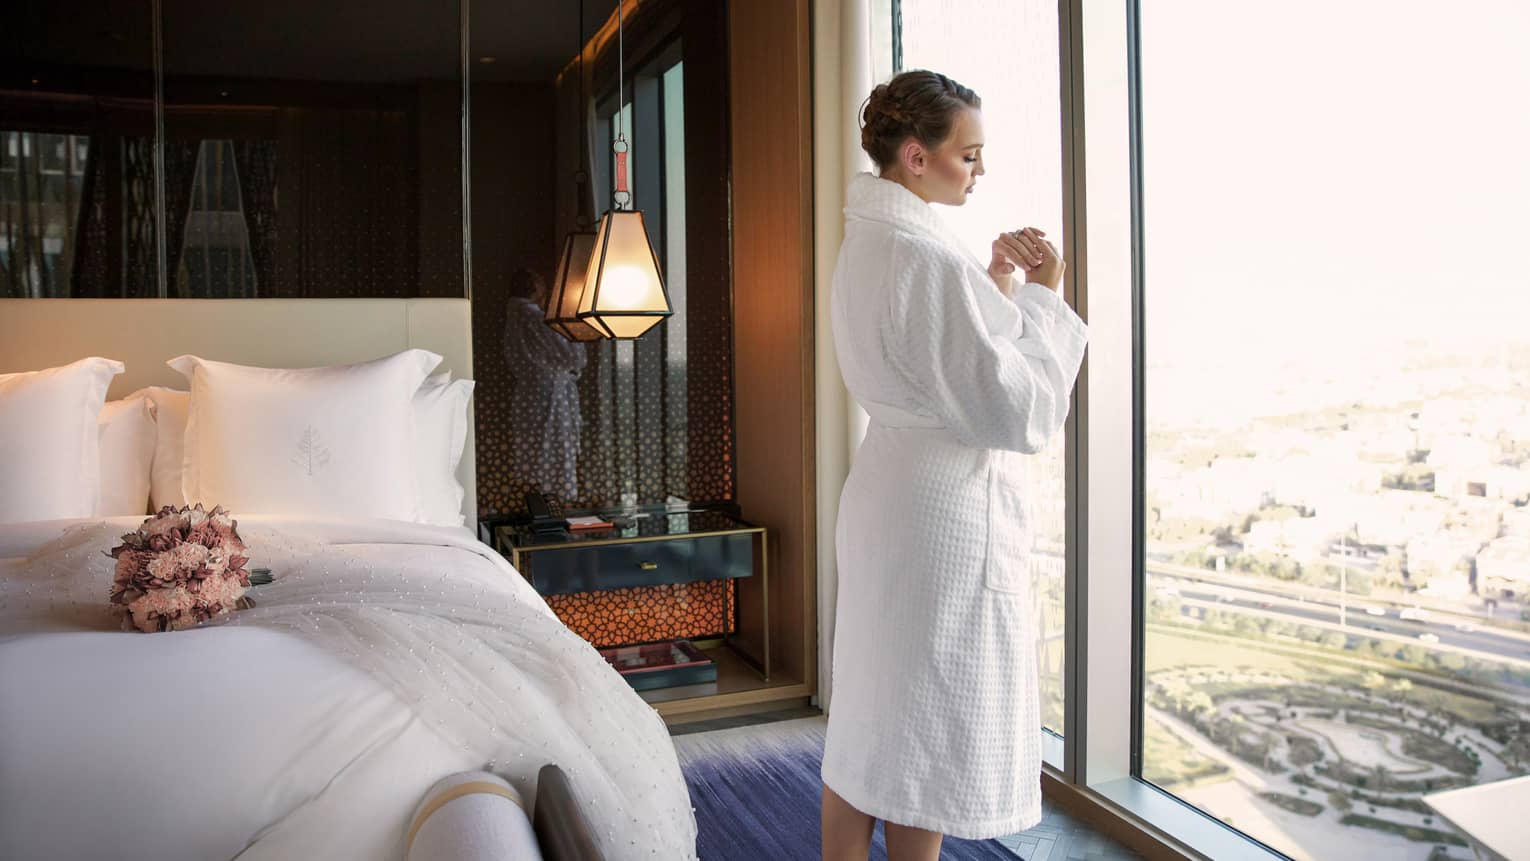 Woman wearing white bathrobe, braids in hair gazes out hotel room window, wedding bouquet on bed